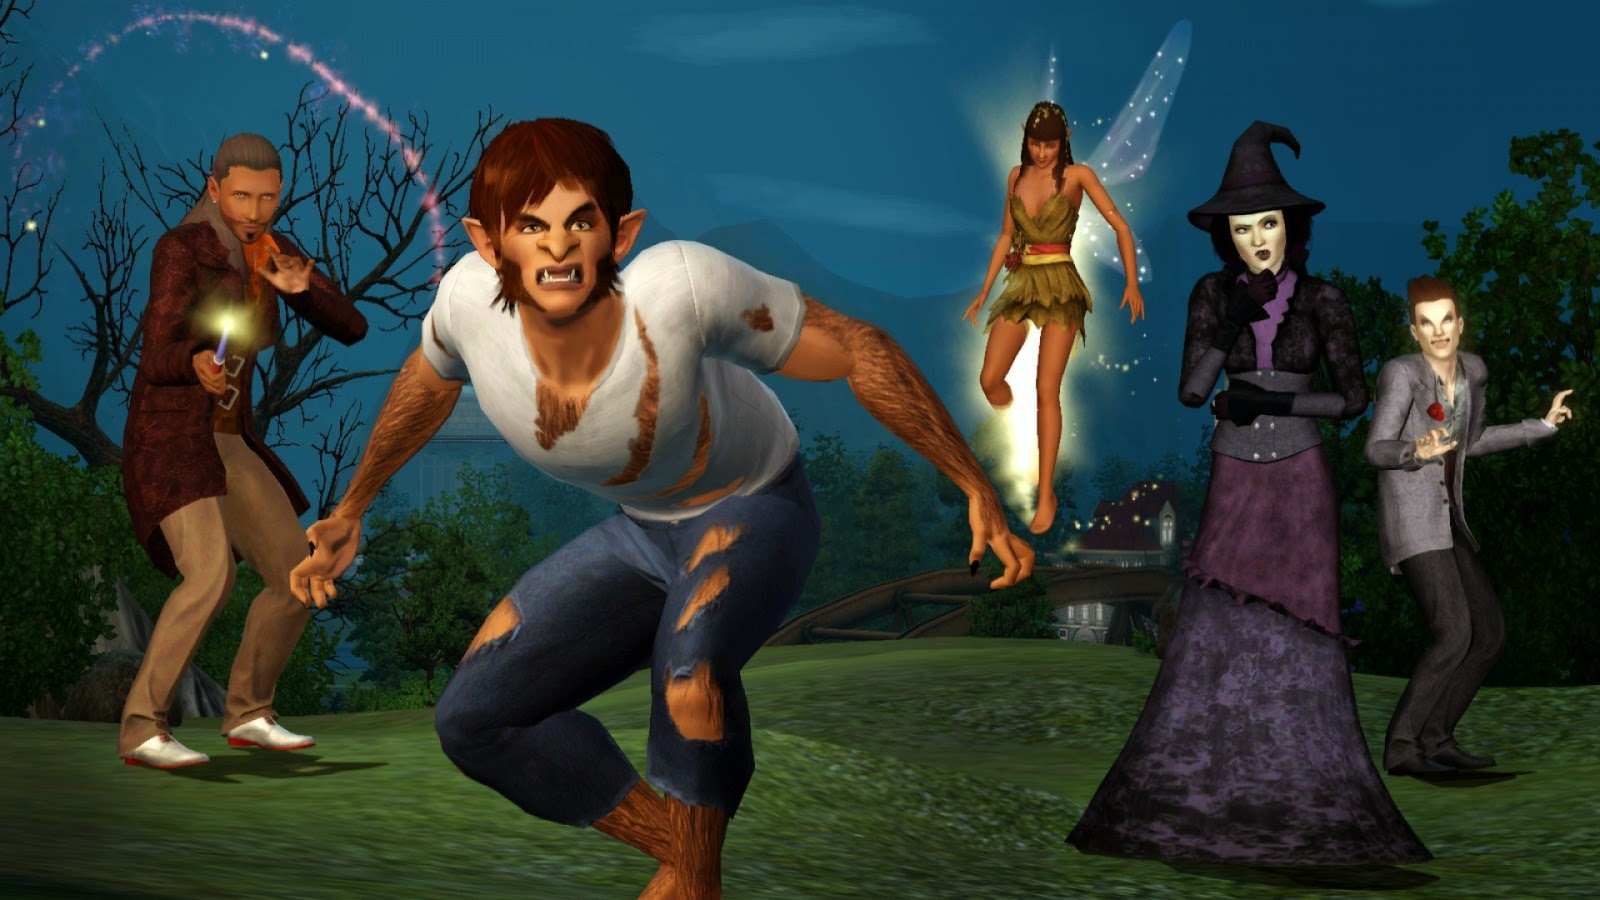 The Sims 4: Realm of Magic is like Harry Potter meets The CW screenshot